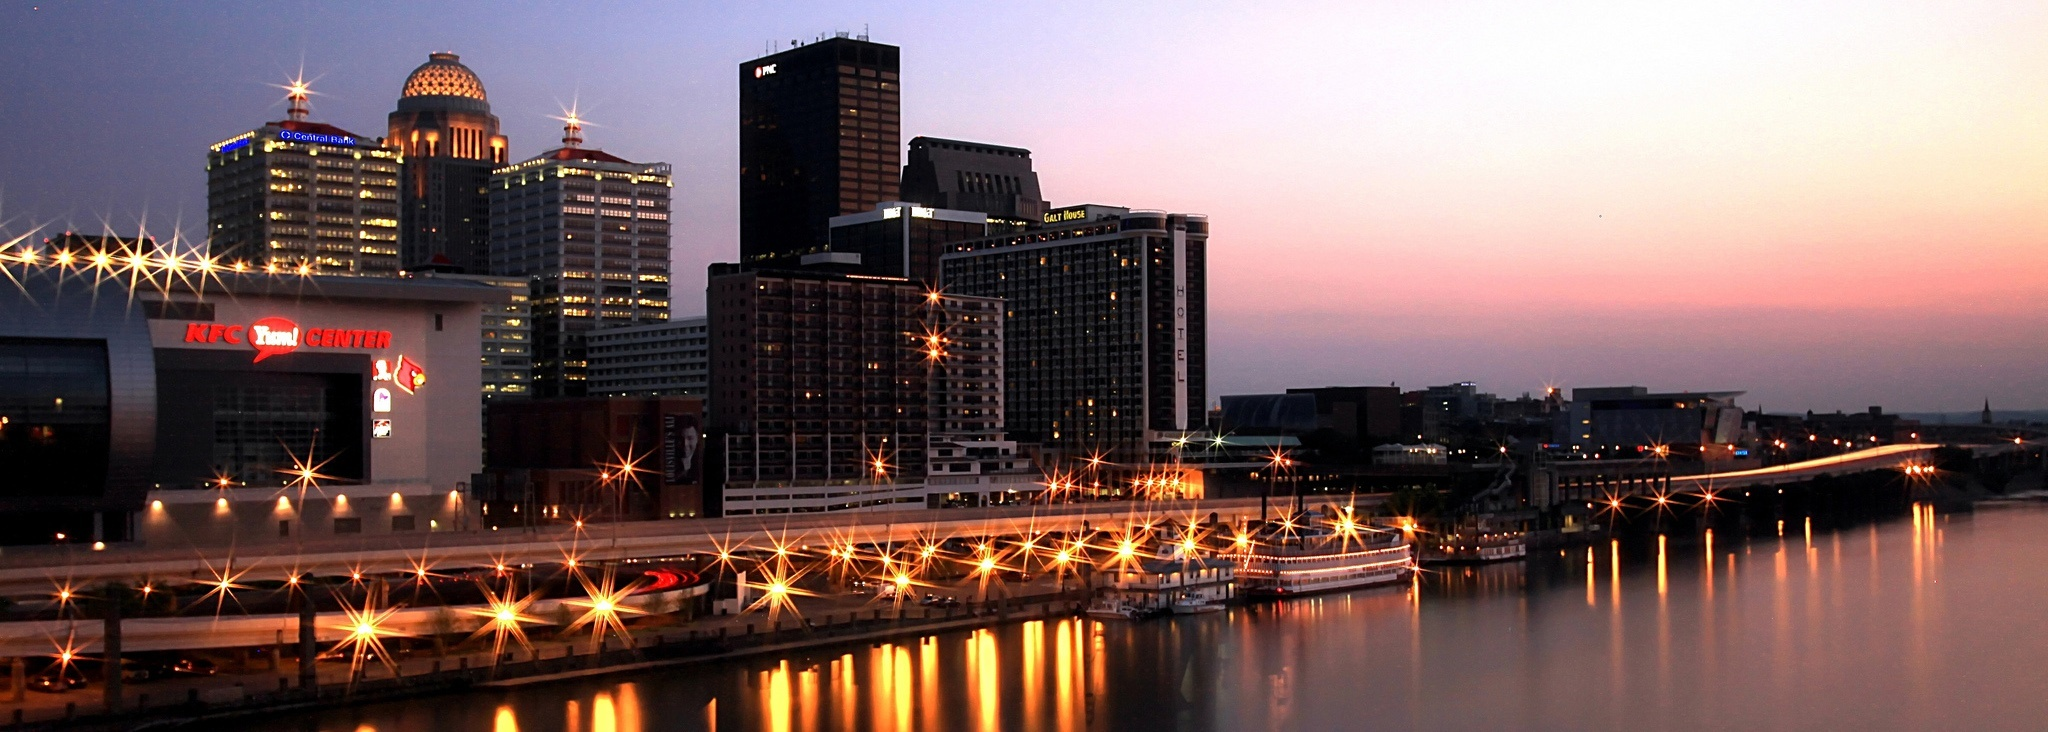 Downtown_Louisville_at_Dusk.jpg